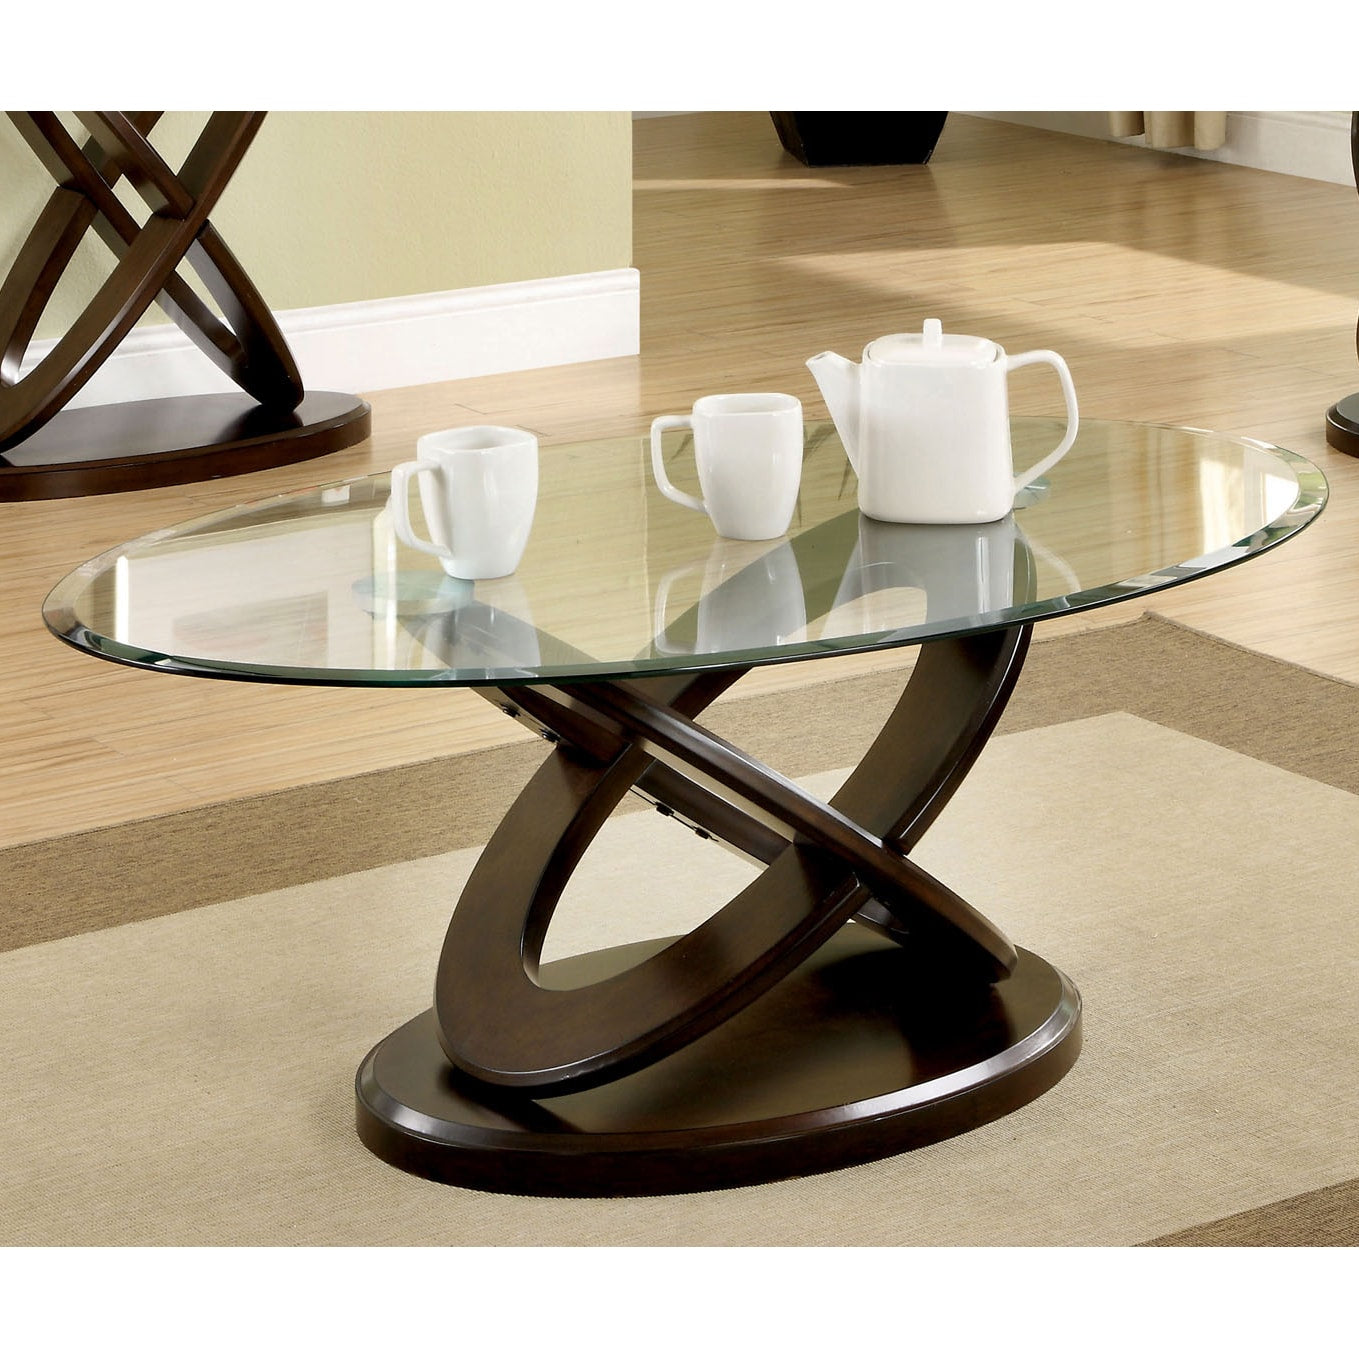 Oval Glass-Top Coffee Table